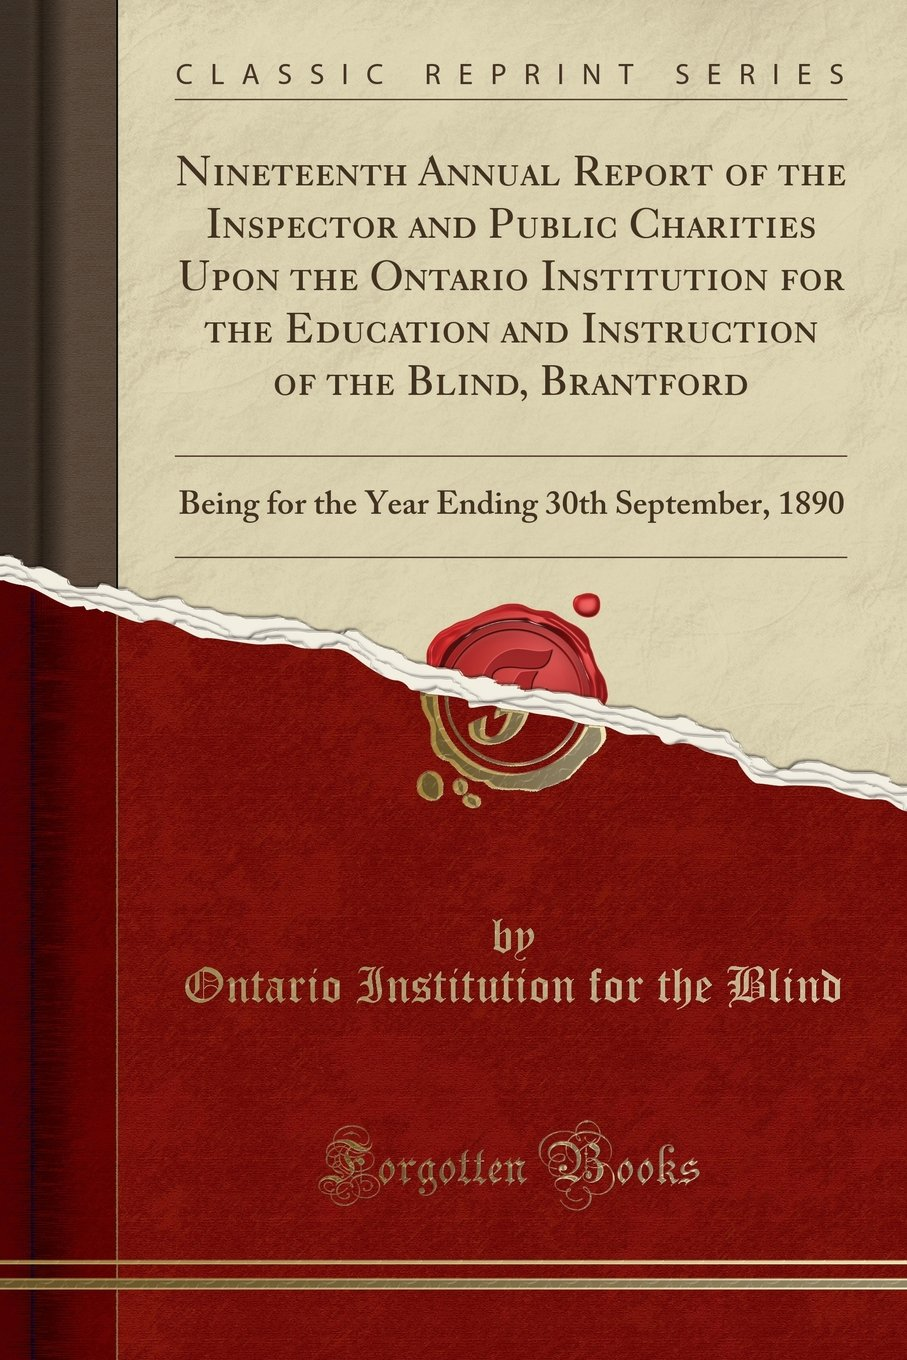 Download Nineteenth Annual Report of the Inspector and Public Charities Upon the Ontario Institution for the Education and Instruction of the Blind, Brantford: ... Ending 30th September, 1890 (Classic Reprint) PDF